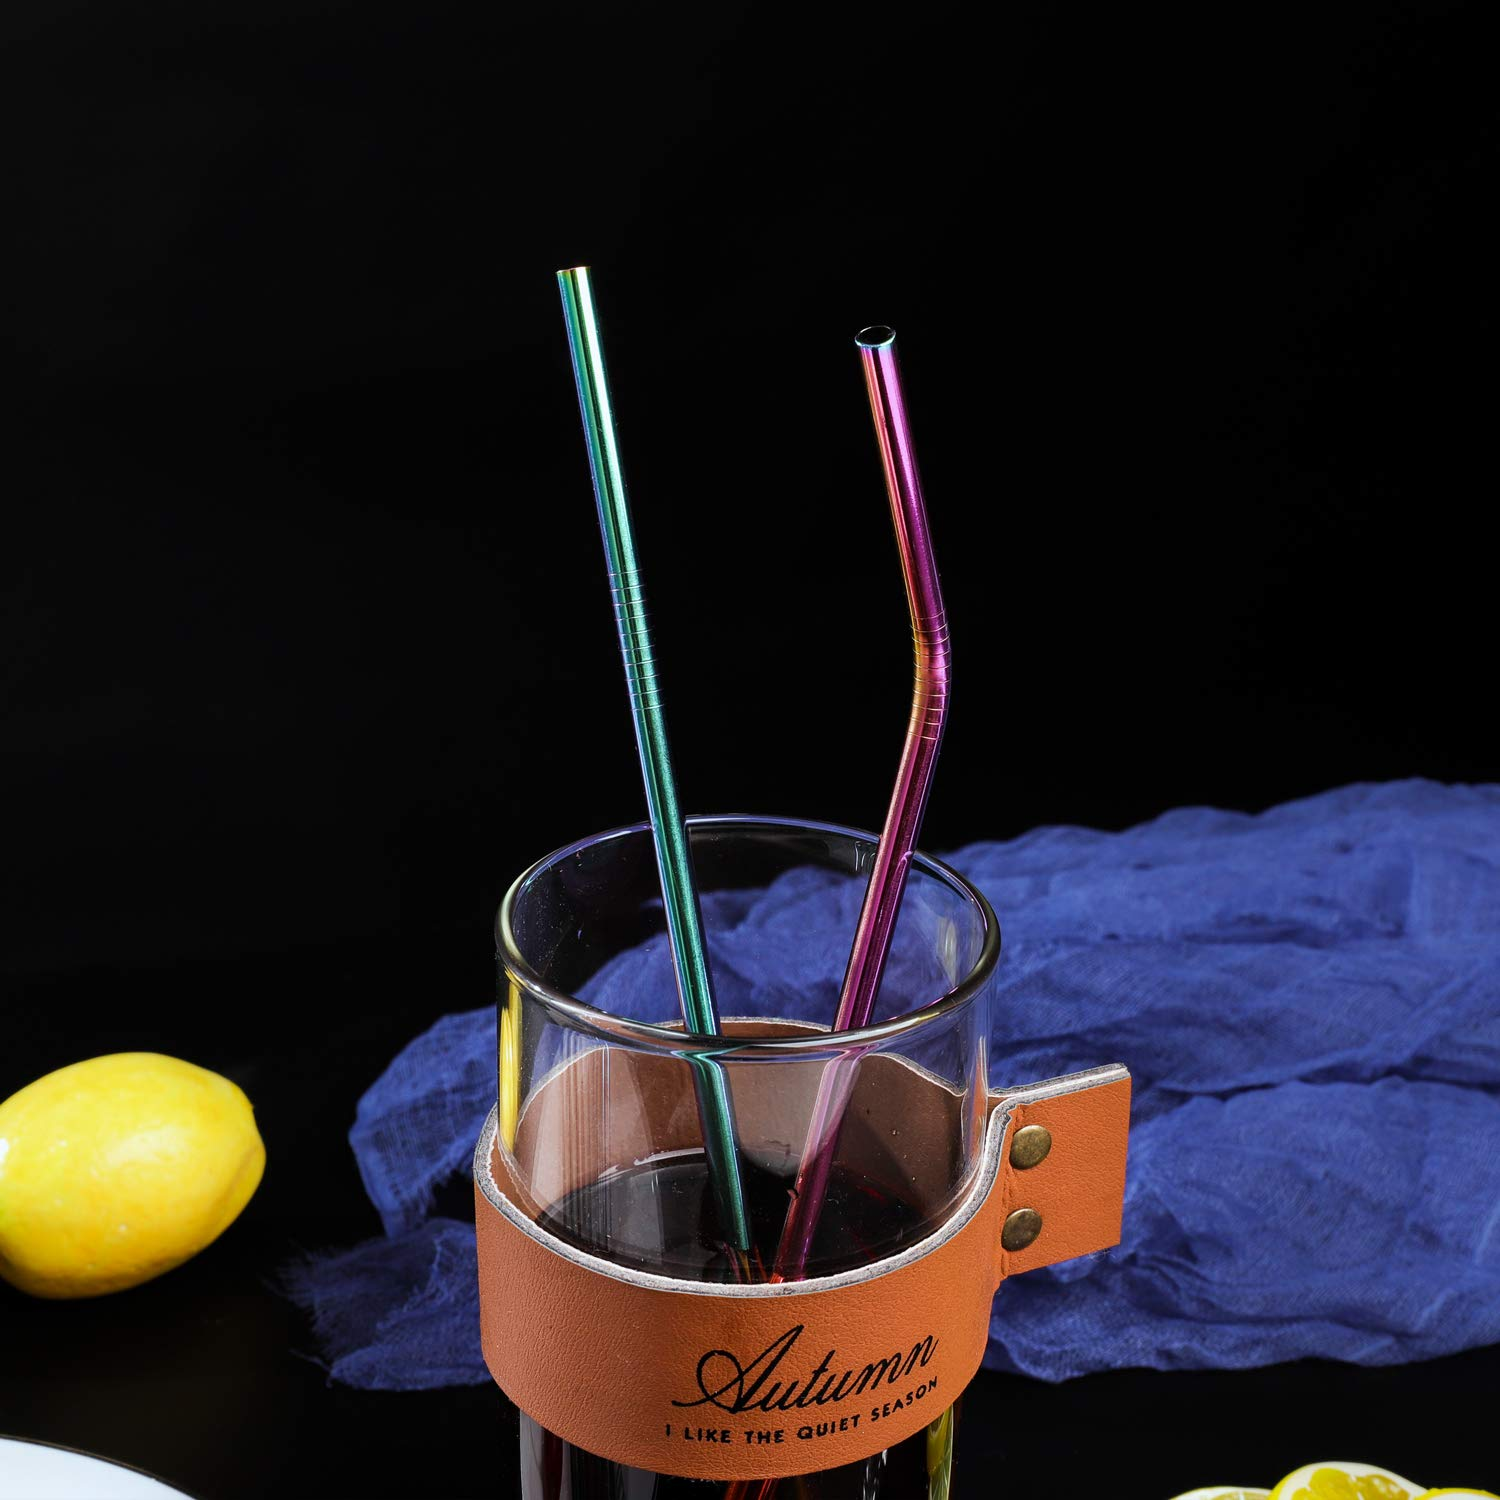 VEHHE Metal Straws Stainless Steel Straws 8 Set Reusable Drinking Rainbow Straws with Cleaning Brush for 20 OZ Tumblers(4 Straight + 4 Bent + 2 Brush) by VEHHE (Image #7)